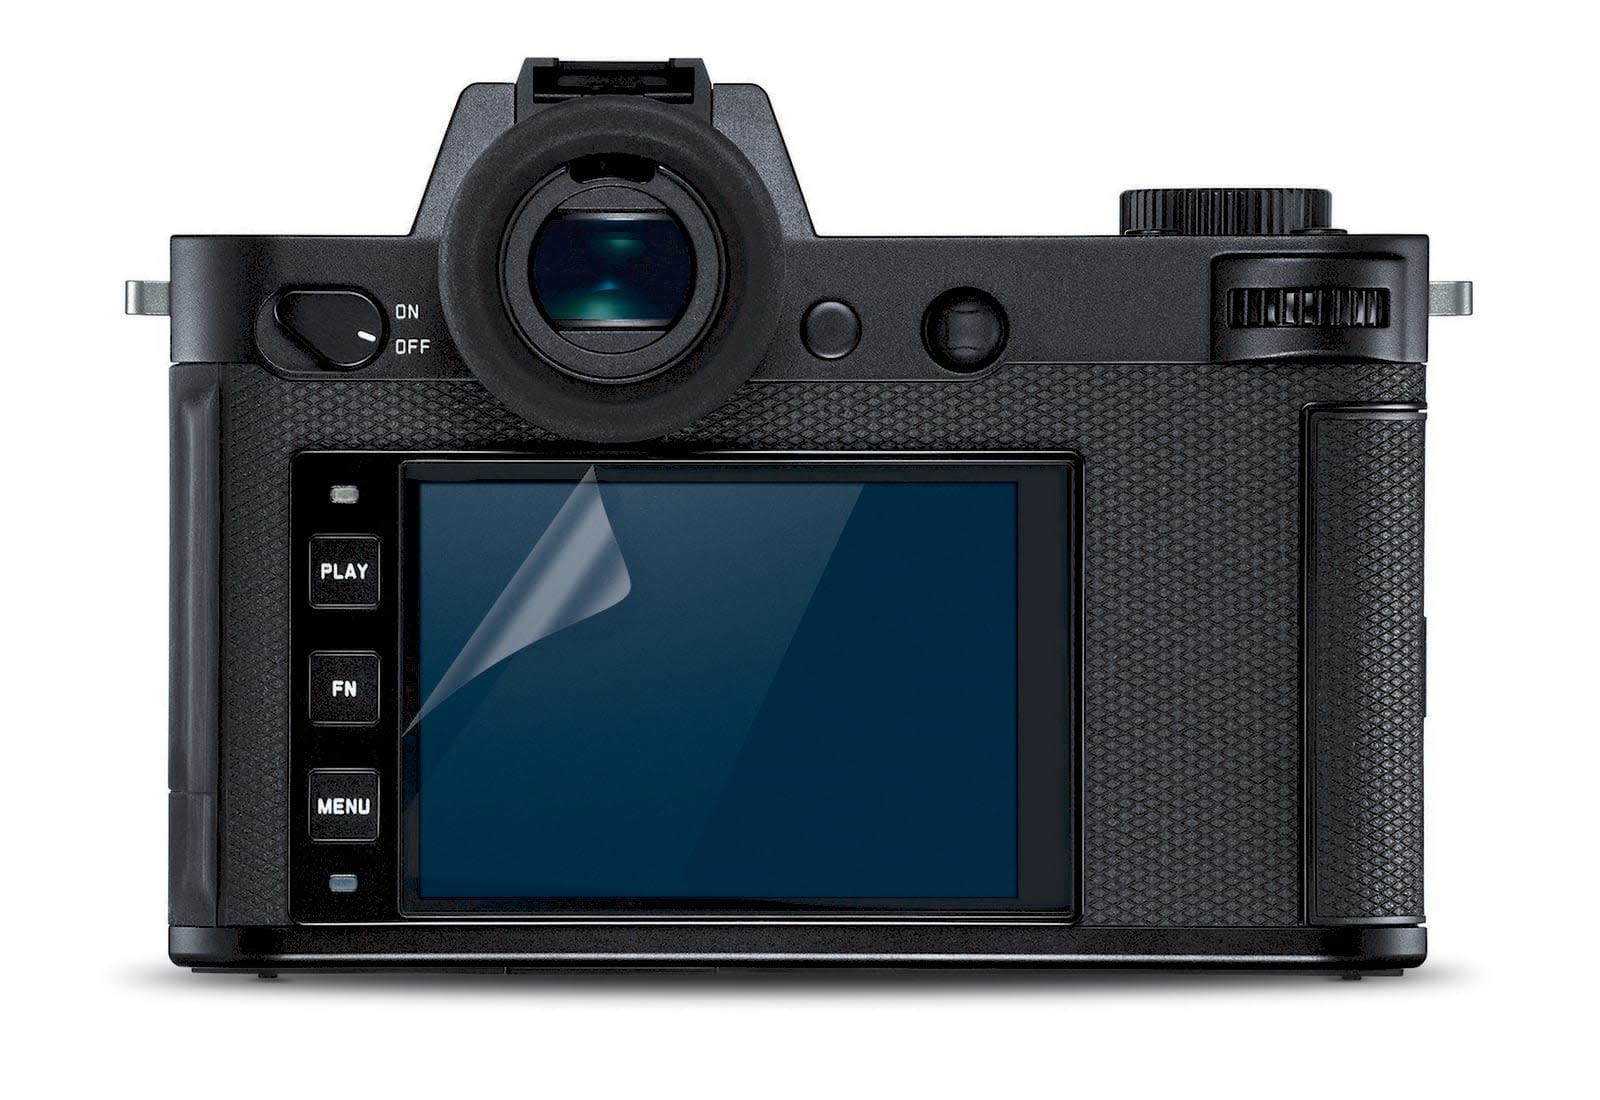 Leica SL2 full-frame mirrorless camera